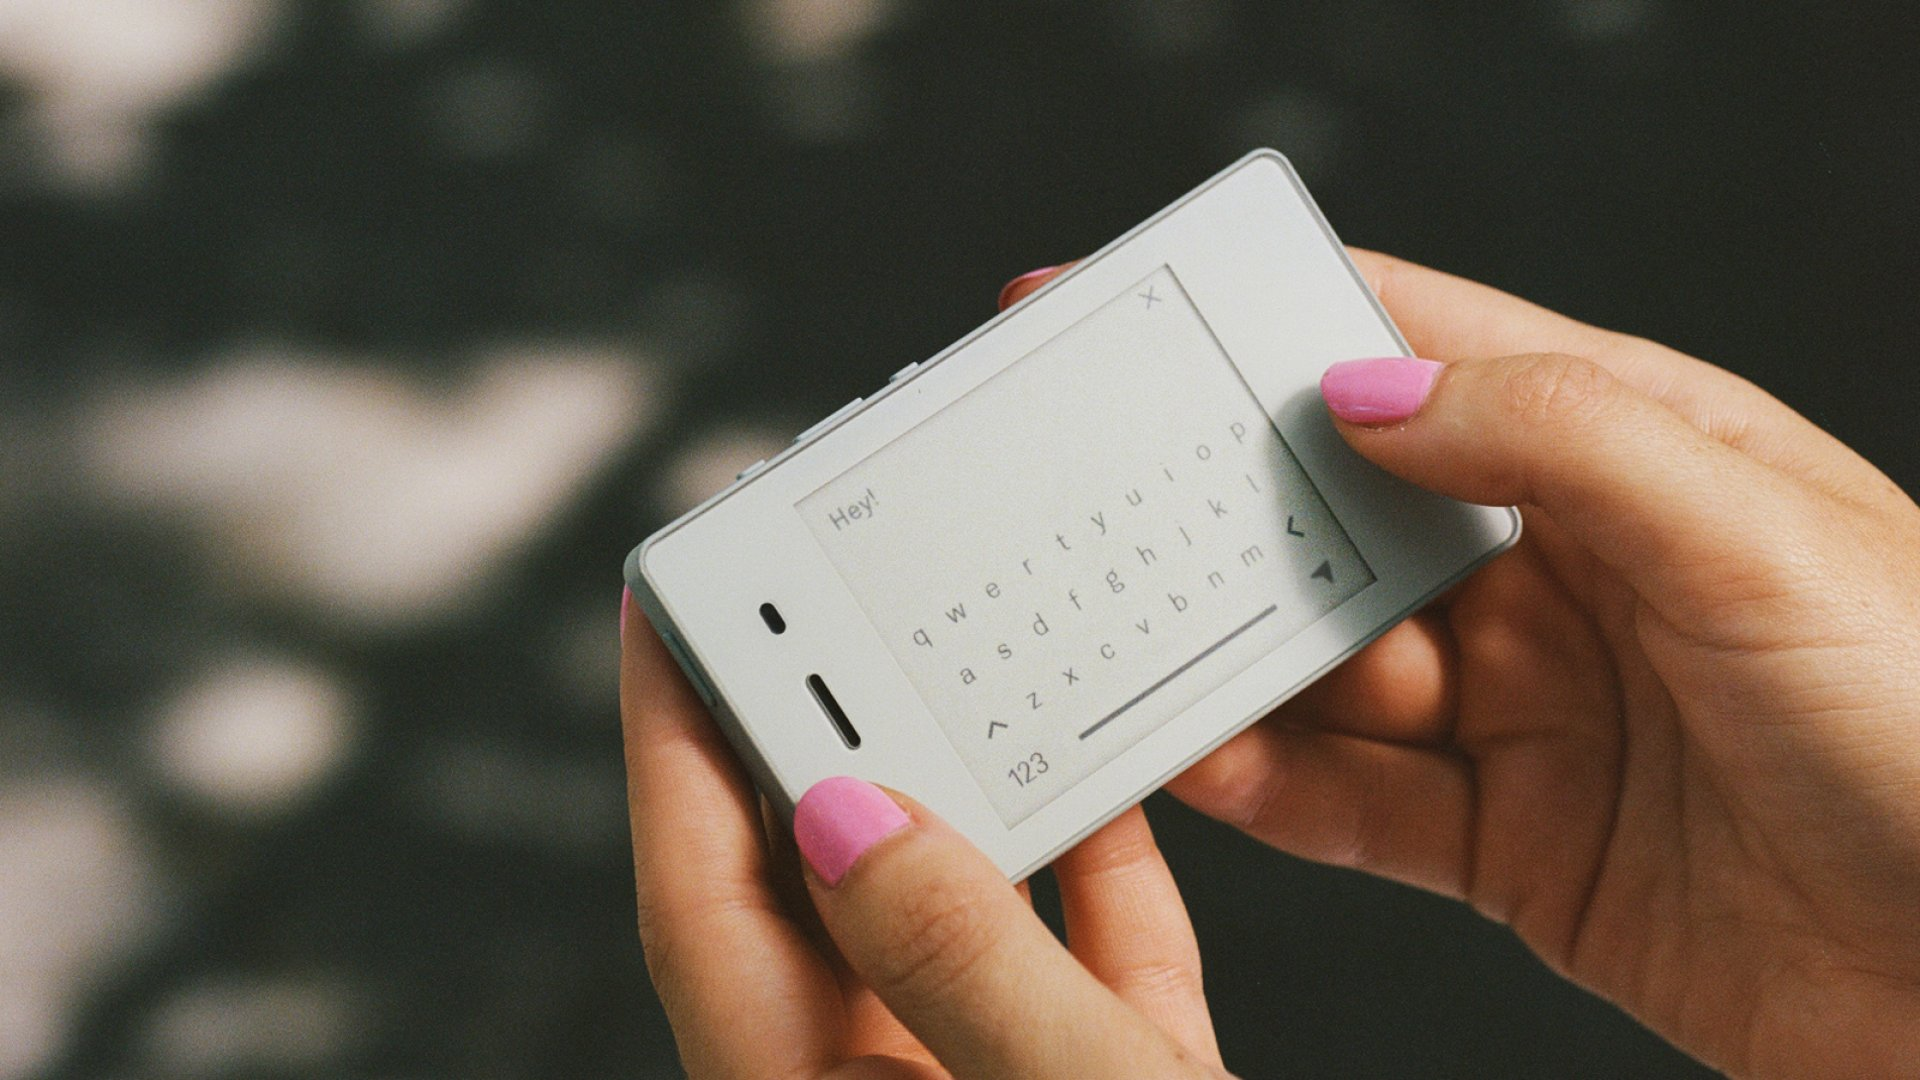 Forget the iPhone 11. Here's What Spending Days With Just This Tiny 'Dumb' Phone Was Like